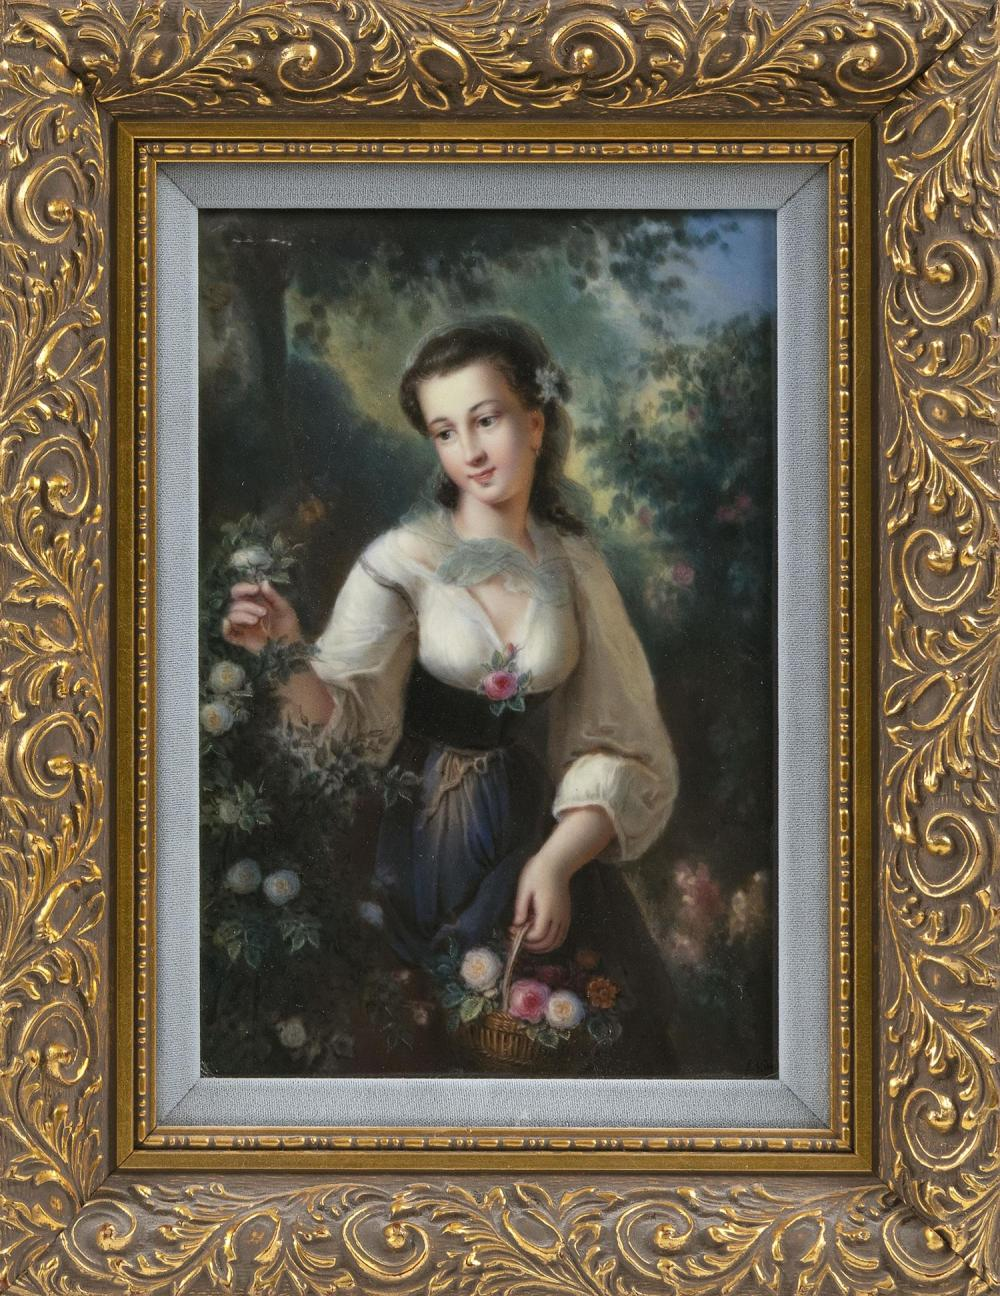 """KPM PORCELAIN PLAQUE Depicts a young woman picking roses in a garden. Signed illegibly lower right. Inscribed verso """"... Guido Rathk..."""